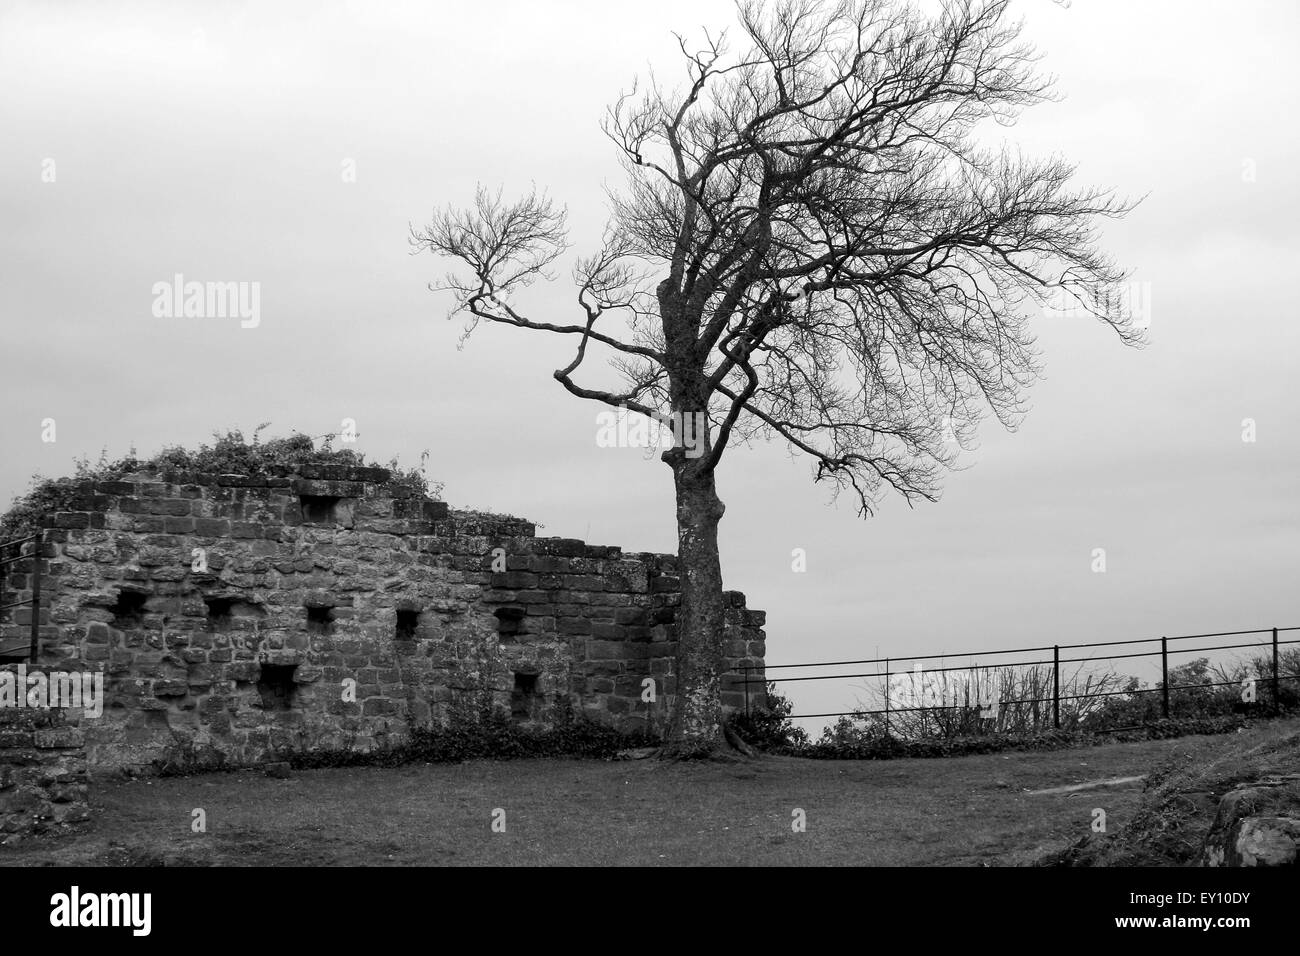 Ghostly tree by castle wall, Germany, black and white. - Stock Image